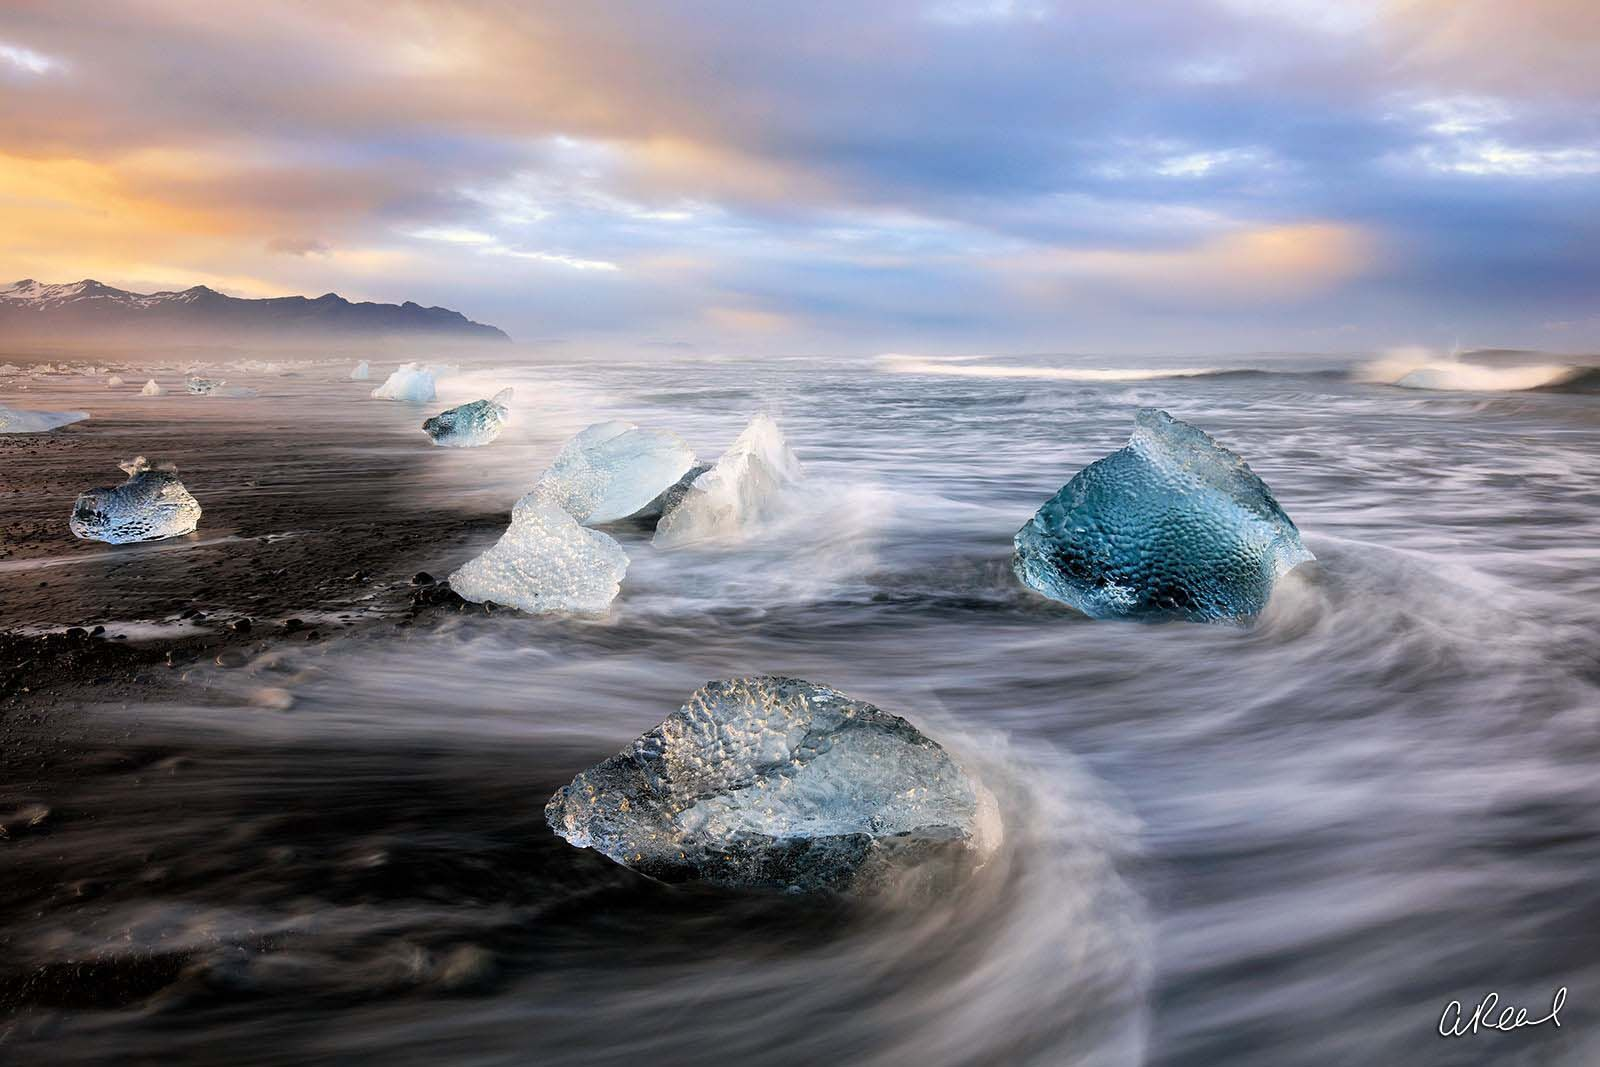 limited edition, fine art, black sand beach, Iceland, Diamonds, Iceland, , photo